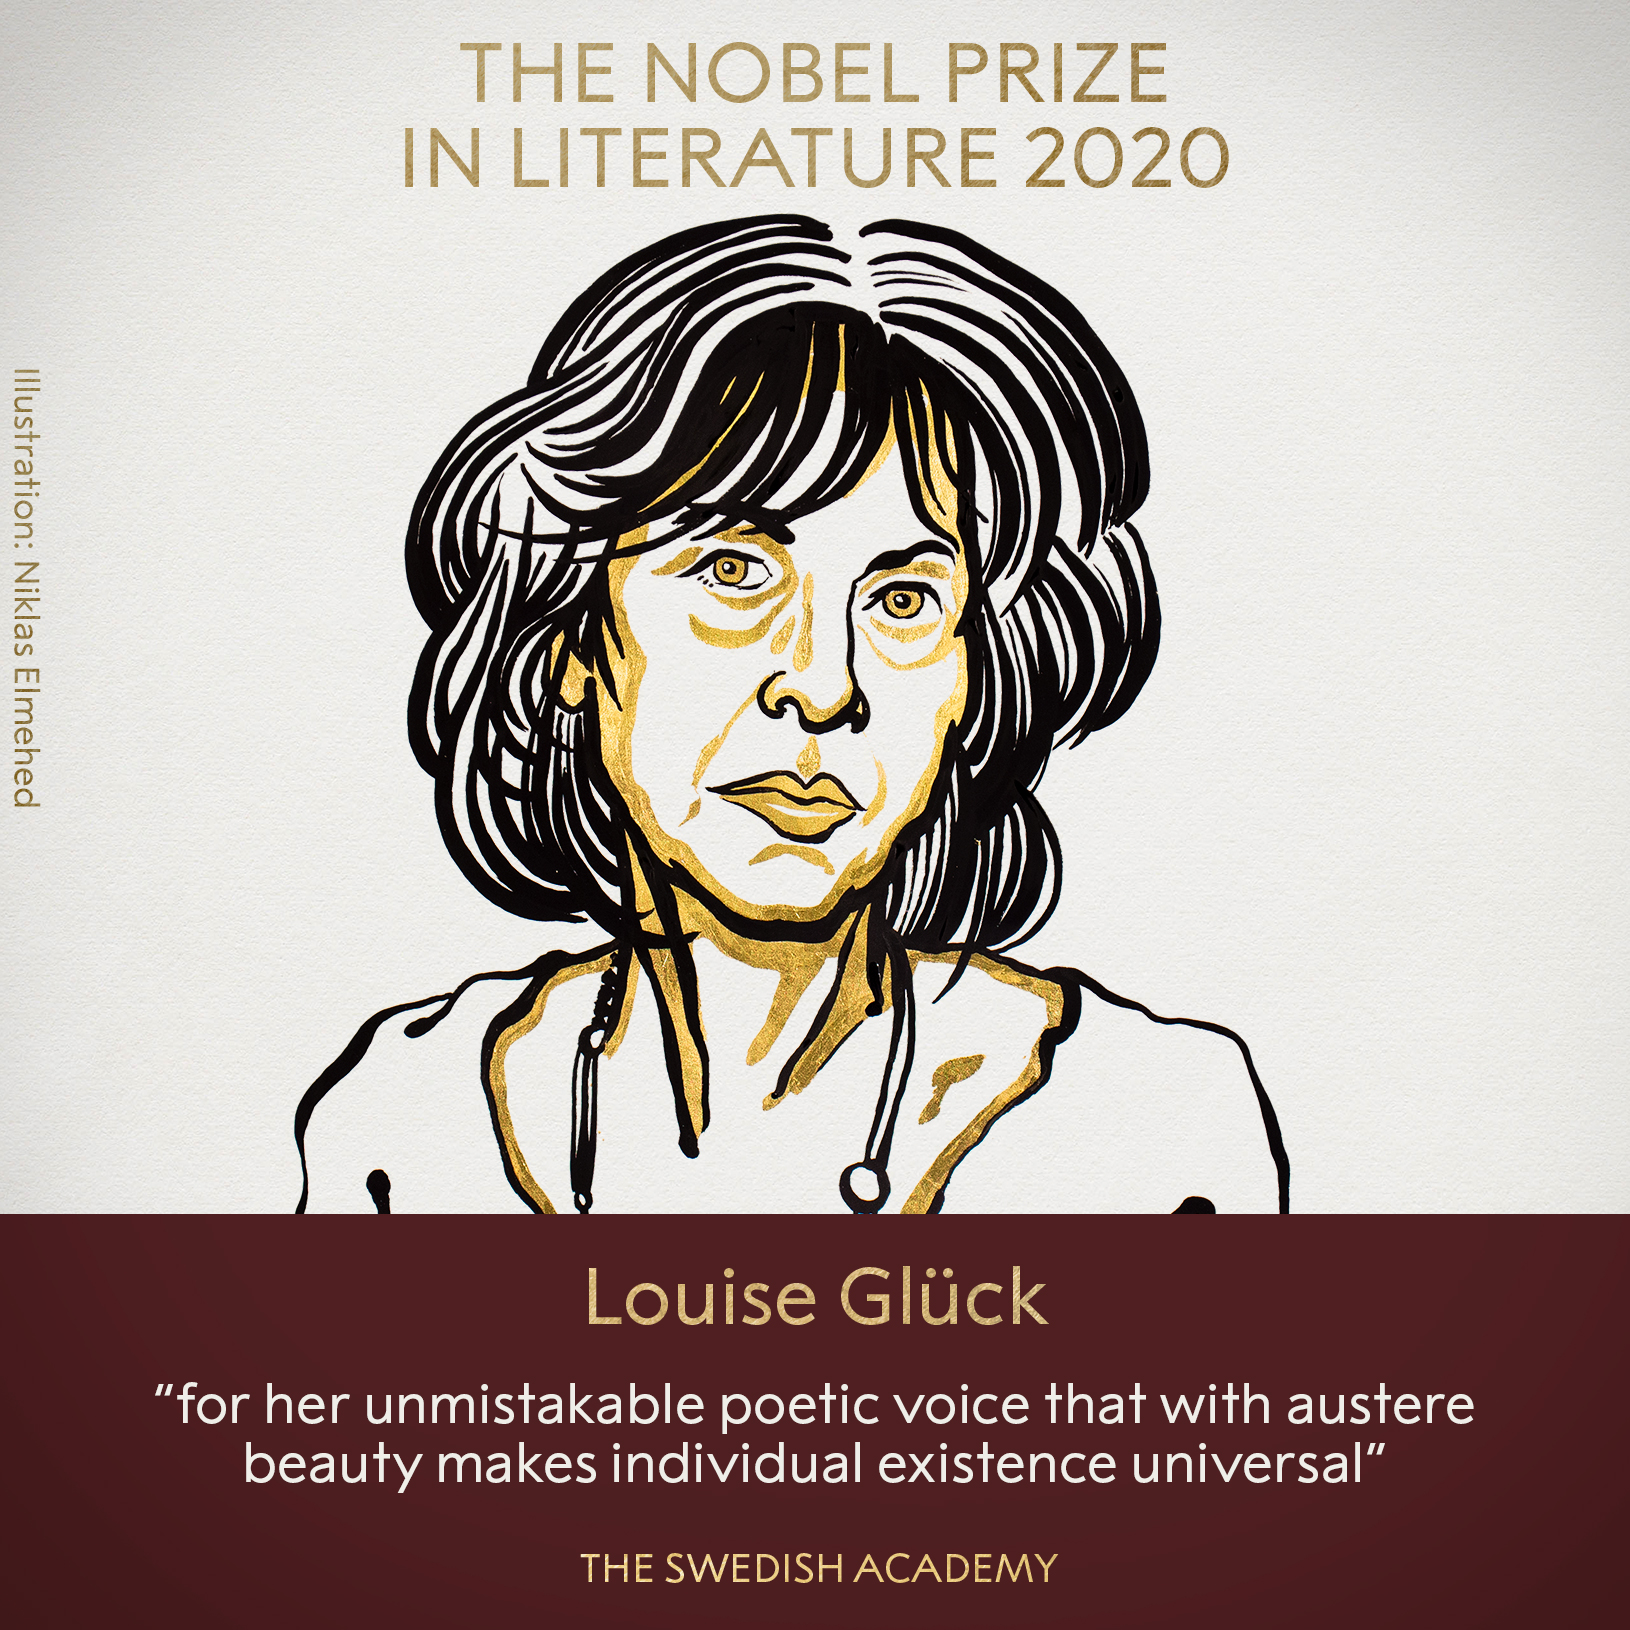 American Poet Louise Glück wins the 2020 Nobel prize in literature